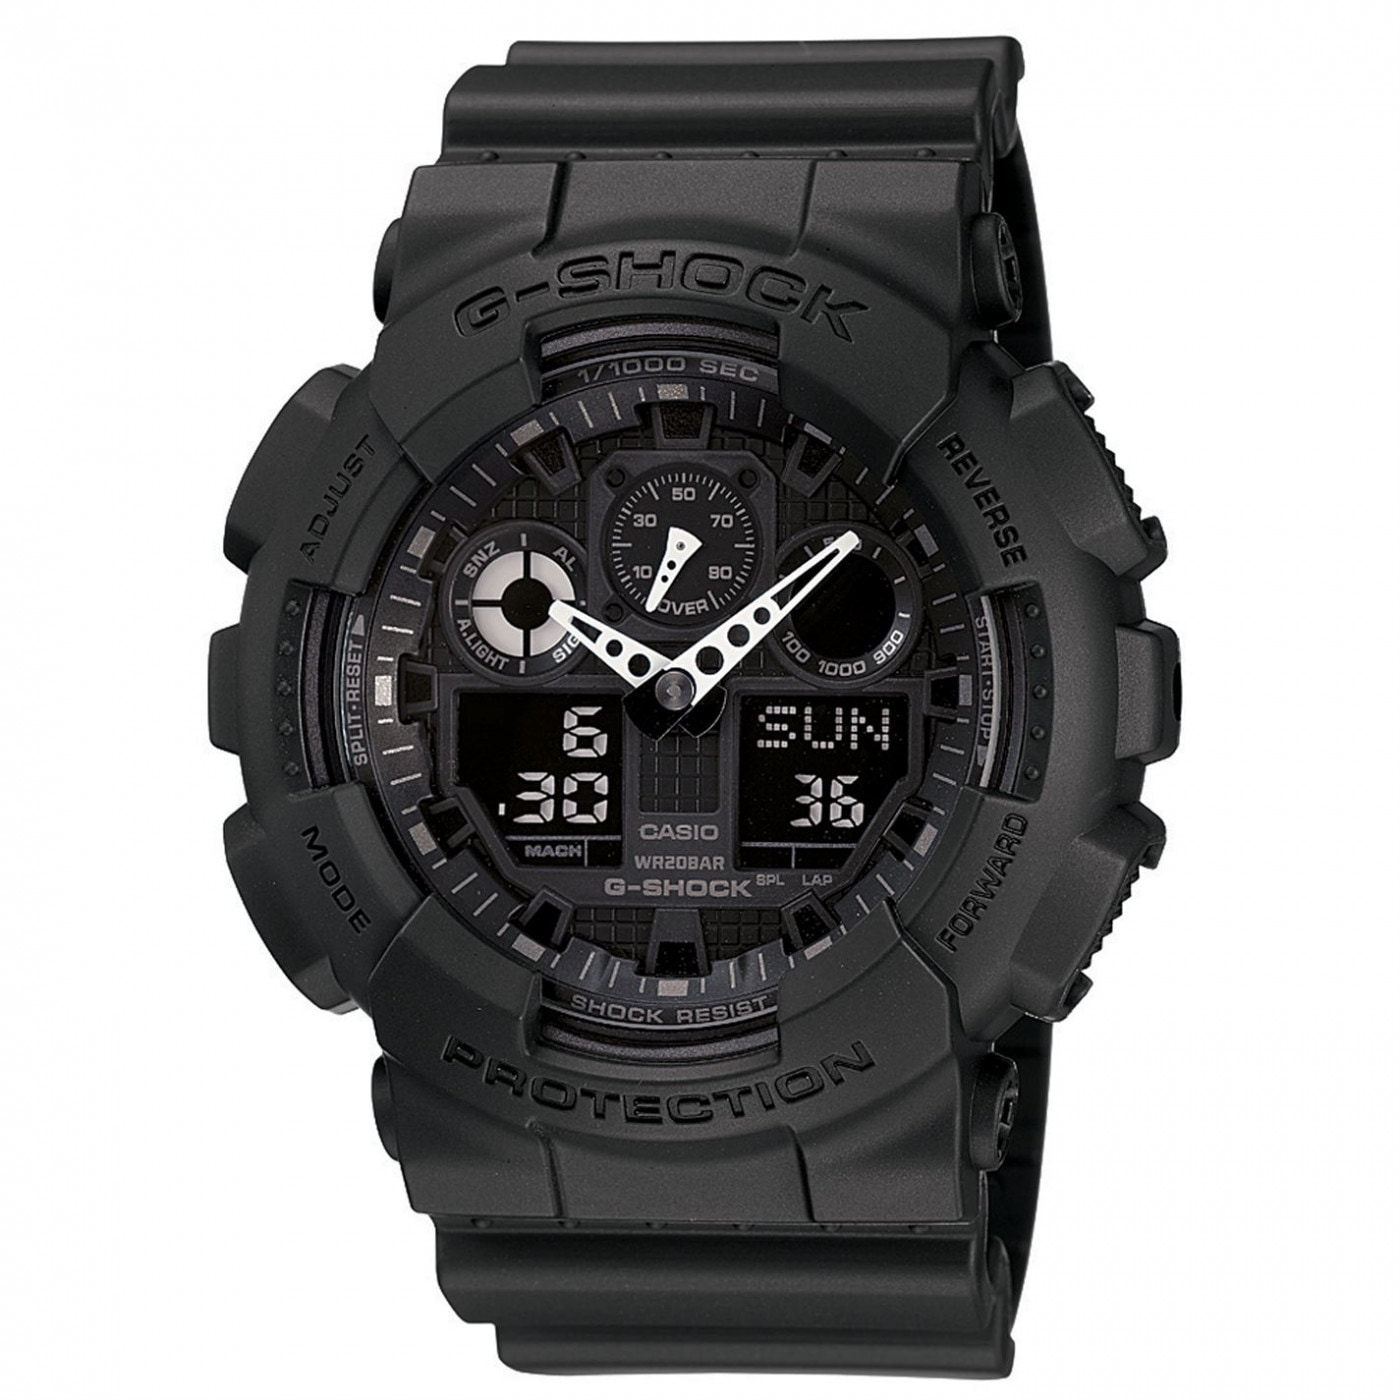 G Shock 100 1a1er Watch